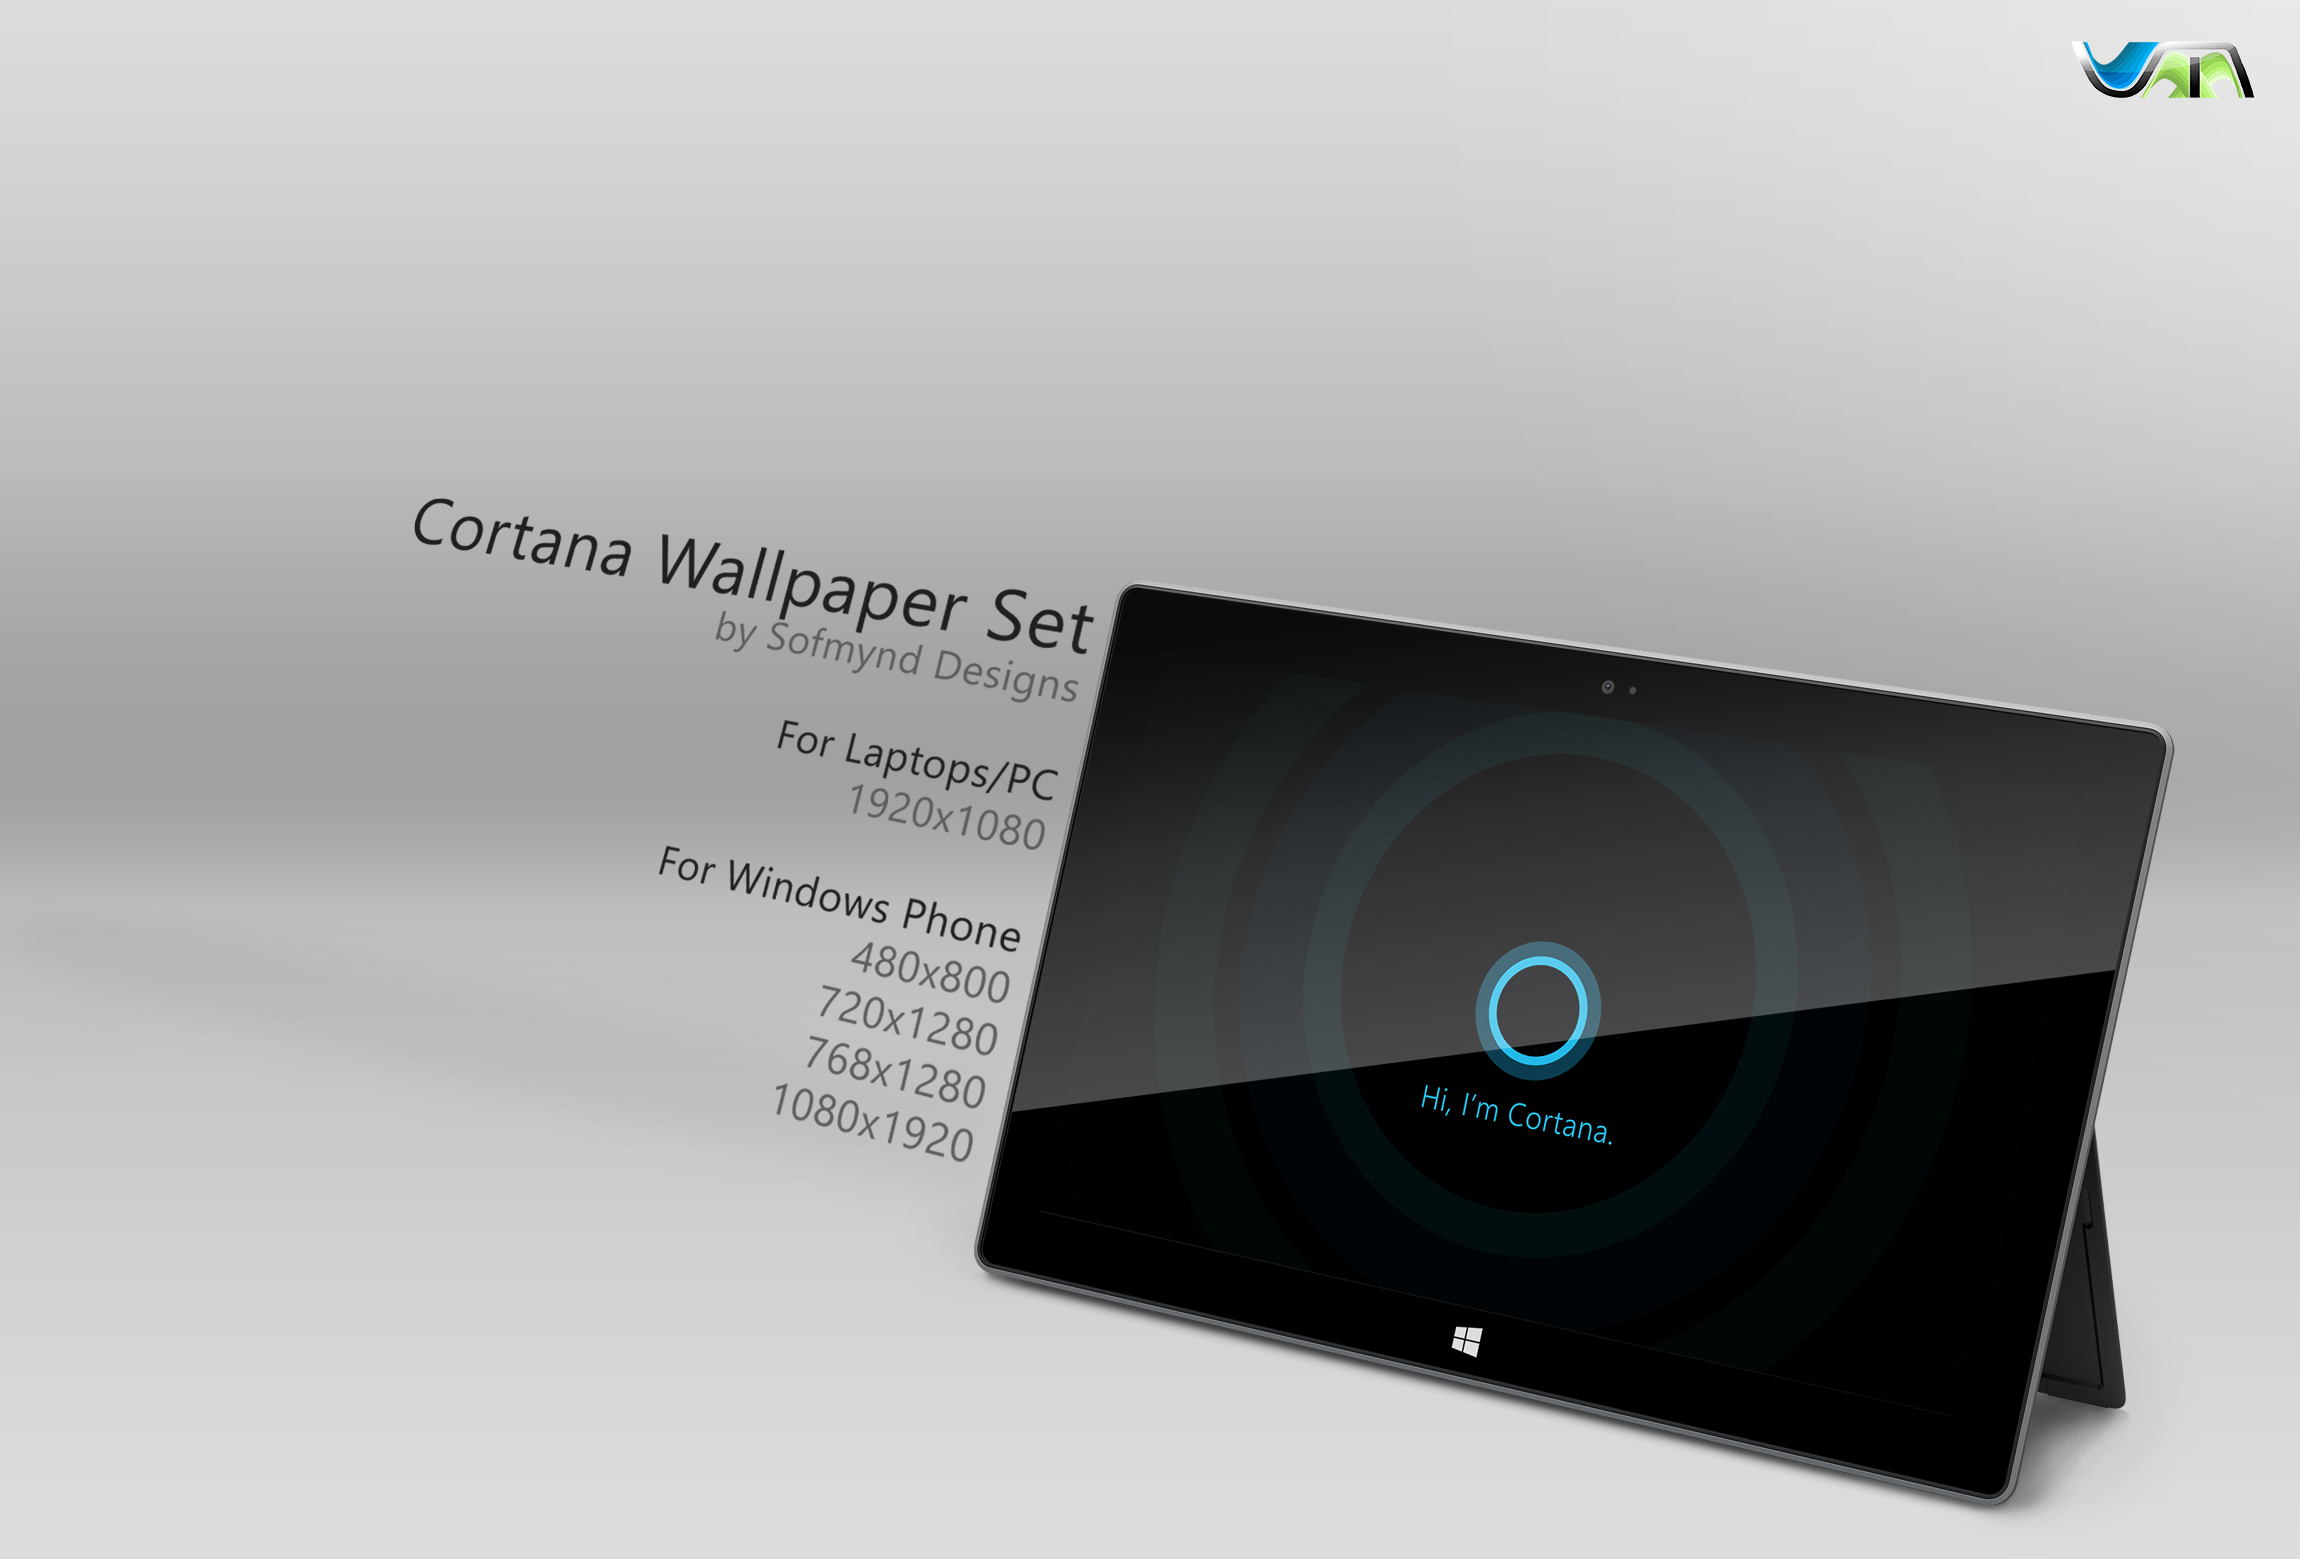 cortana wallpaper windows phone wallpapersafari